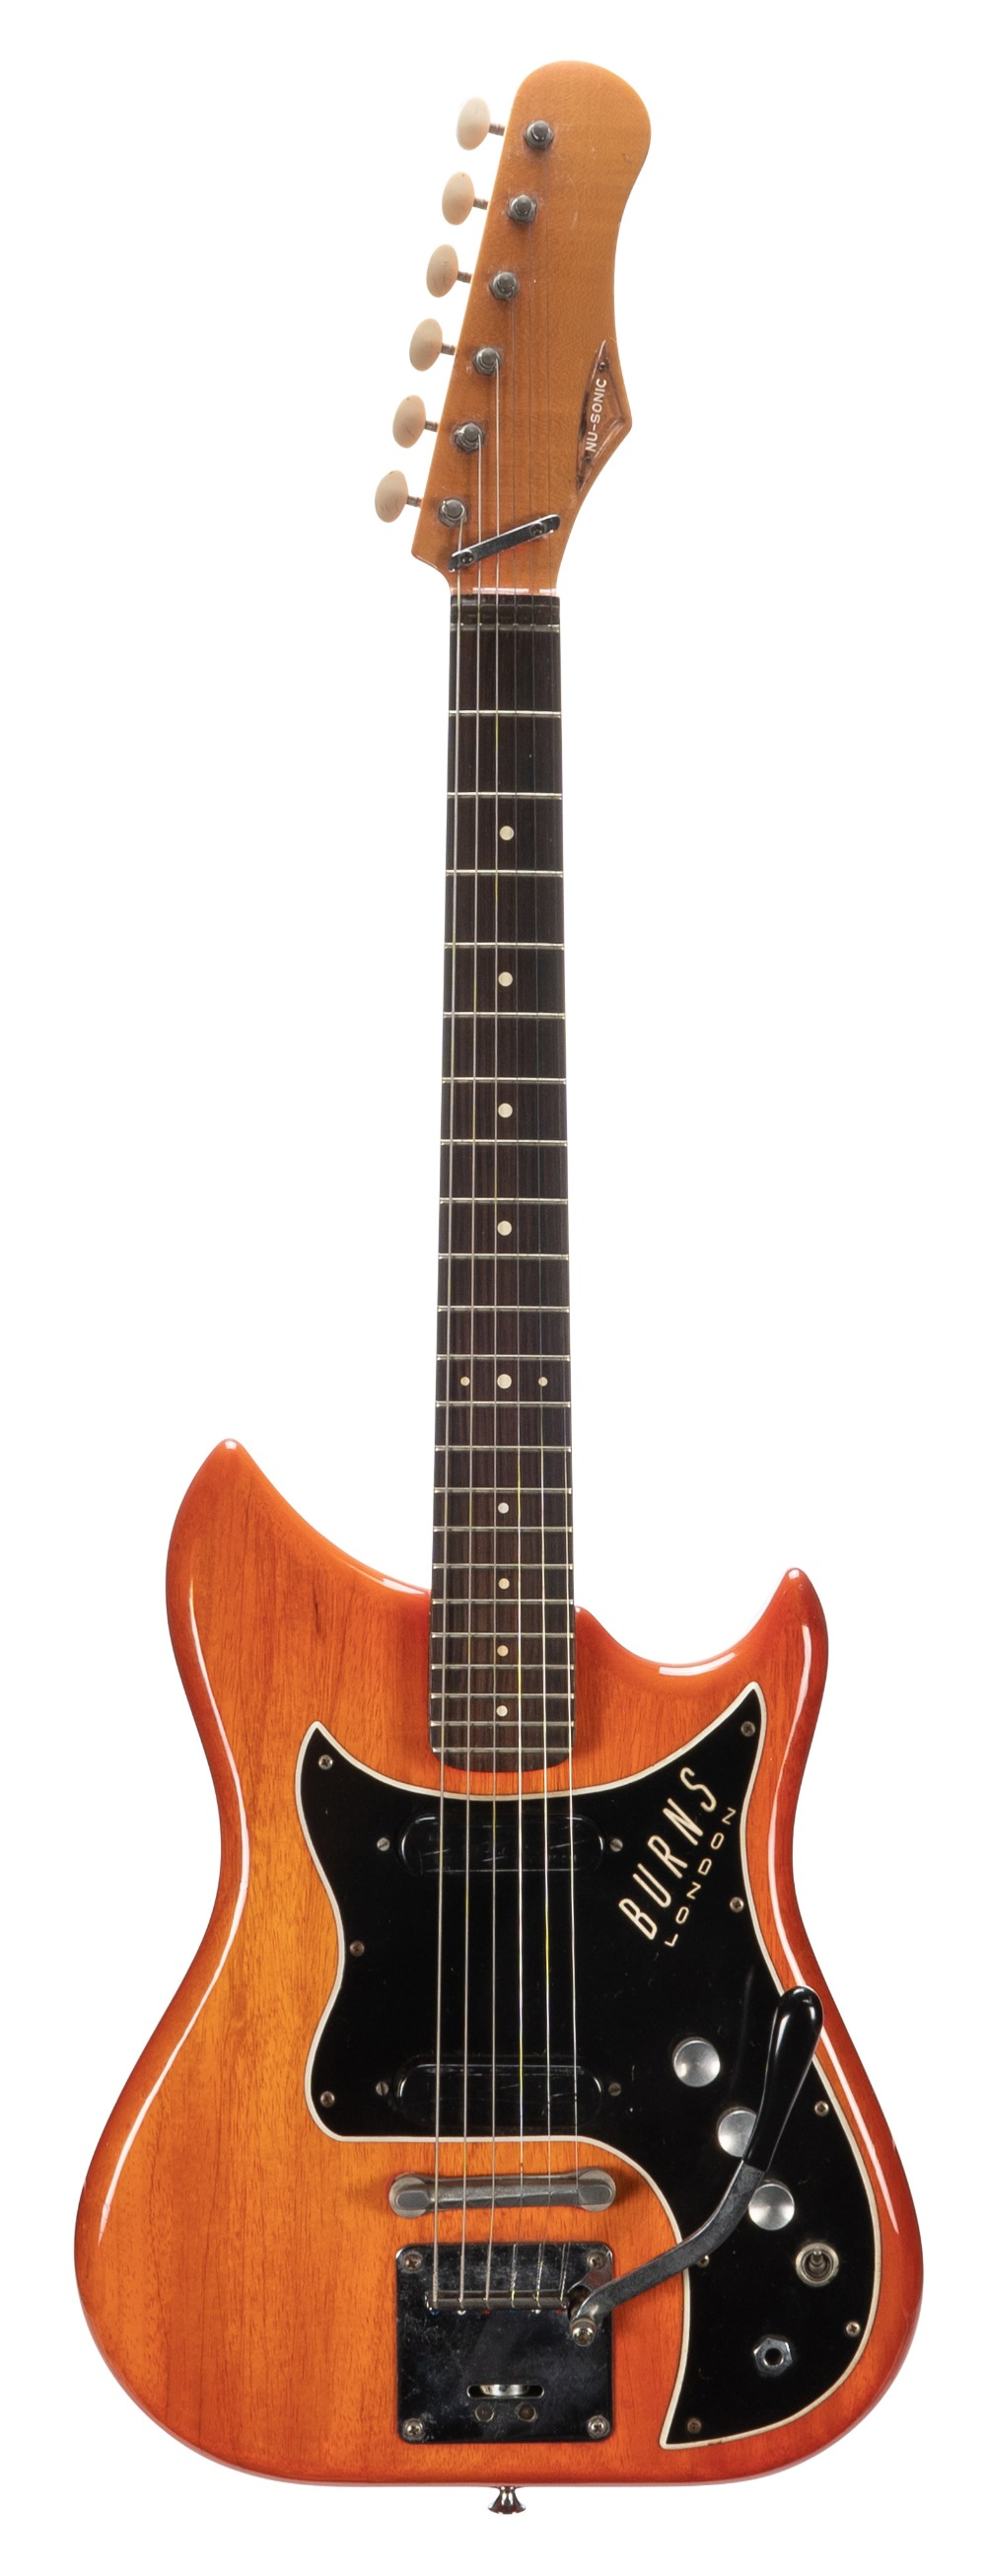 1964 Burns Nu-Sonic electric guitar, made in England, ser. no. 7xx7; Finish: red, mild fading to the